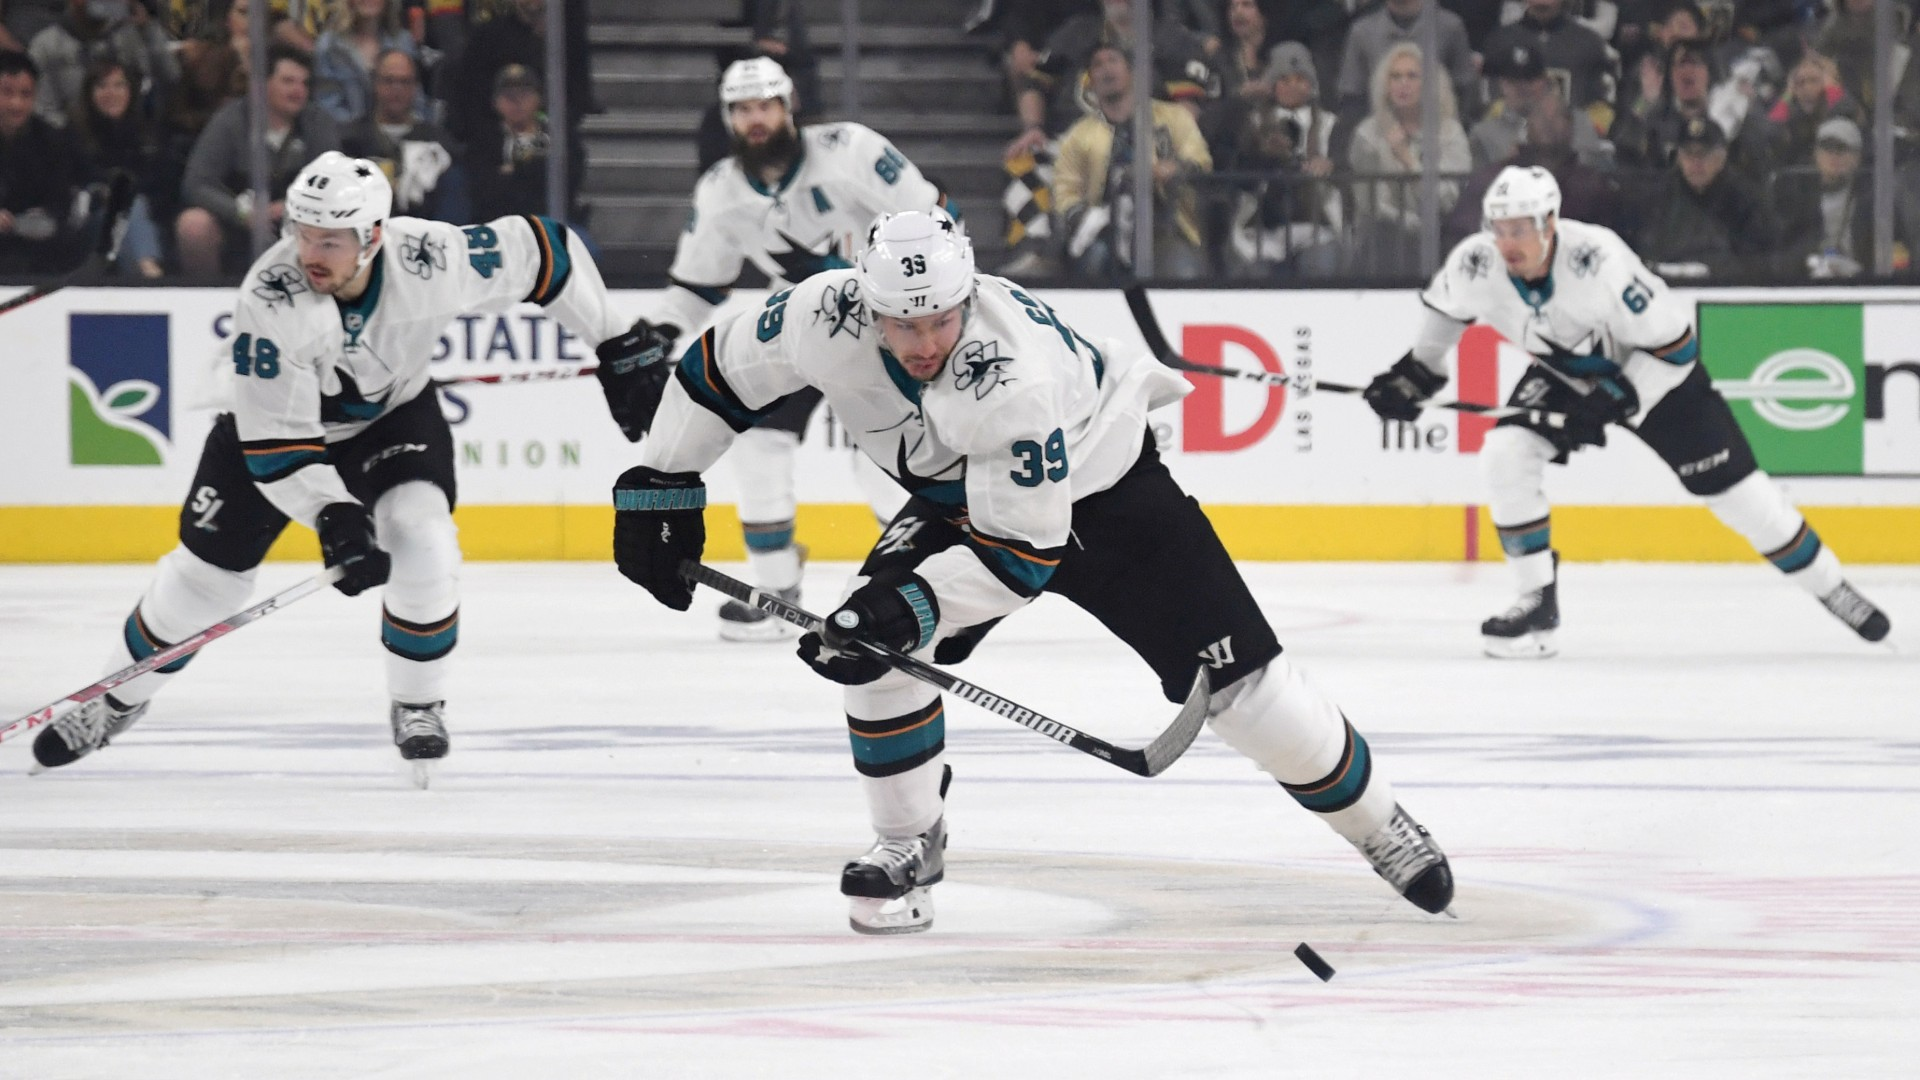 NHL playoffs 2019: Sharks' Logan Couture scores goal, loses